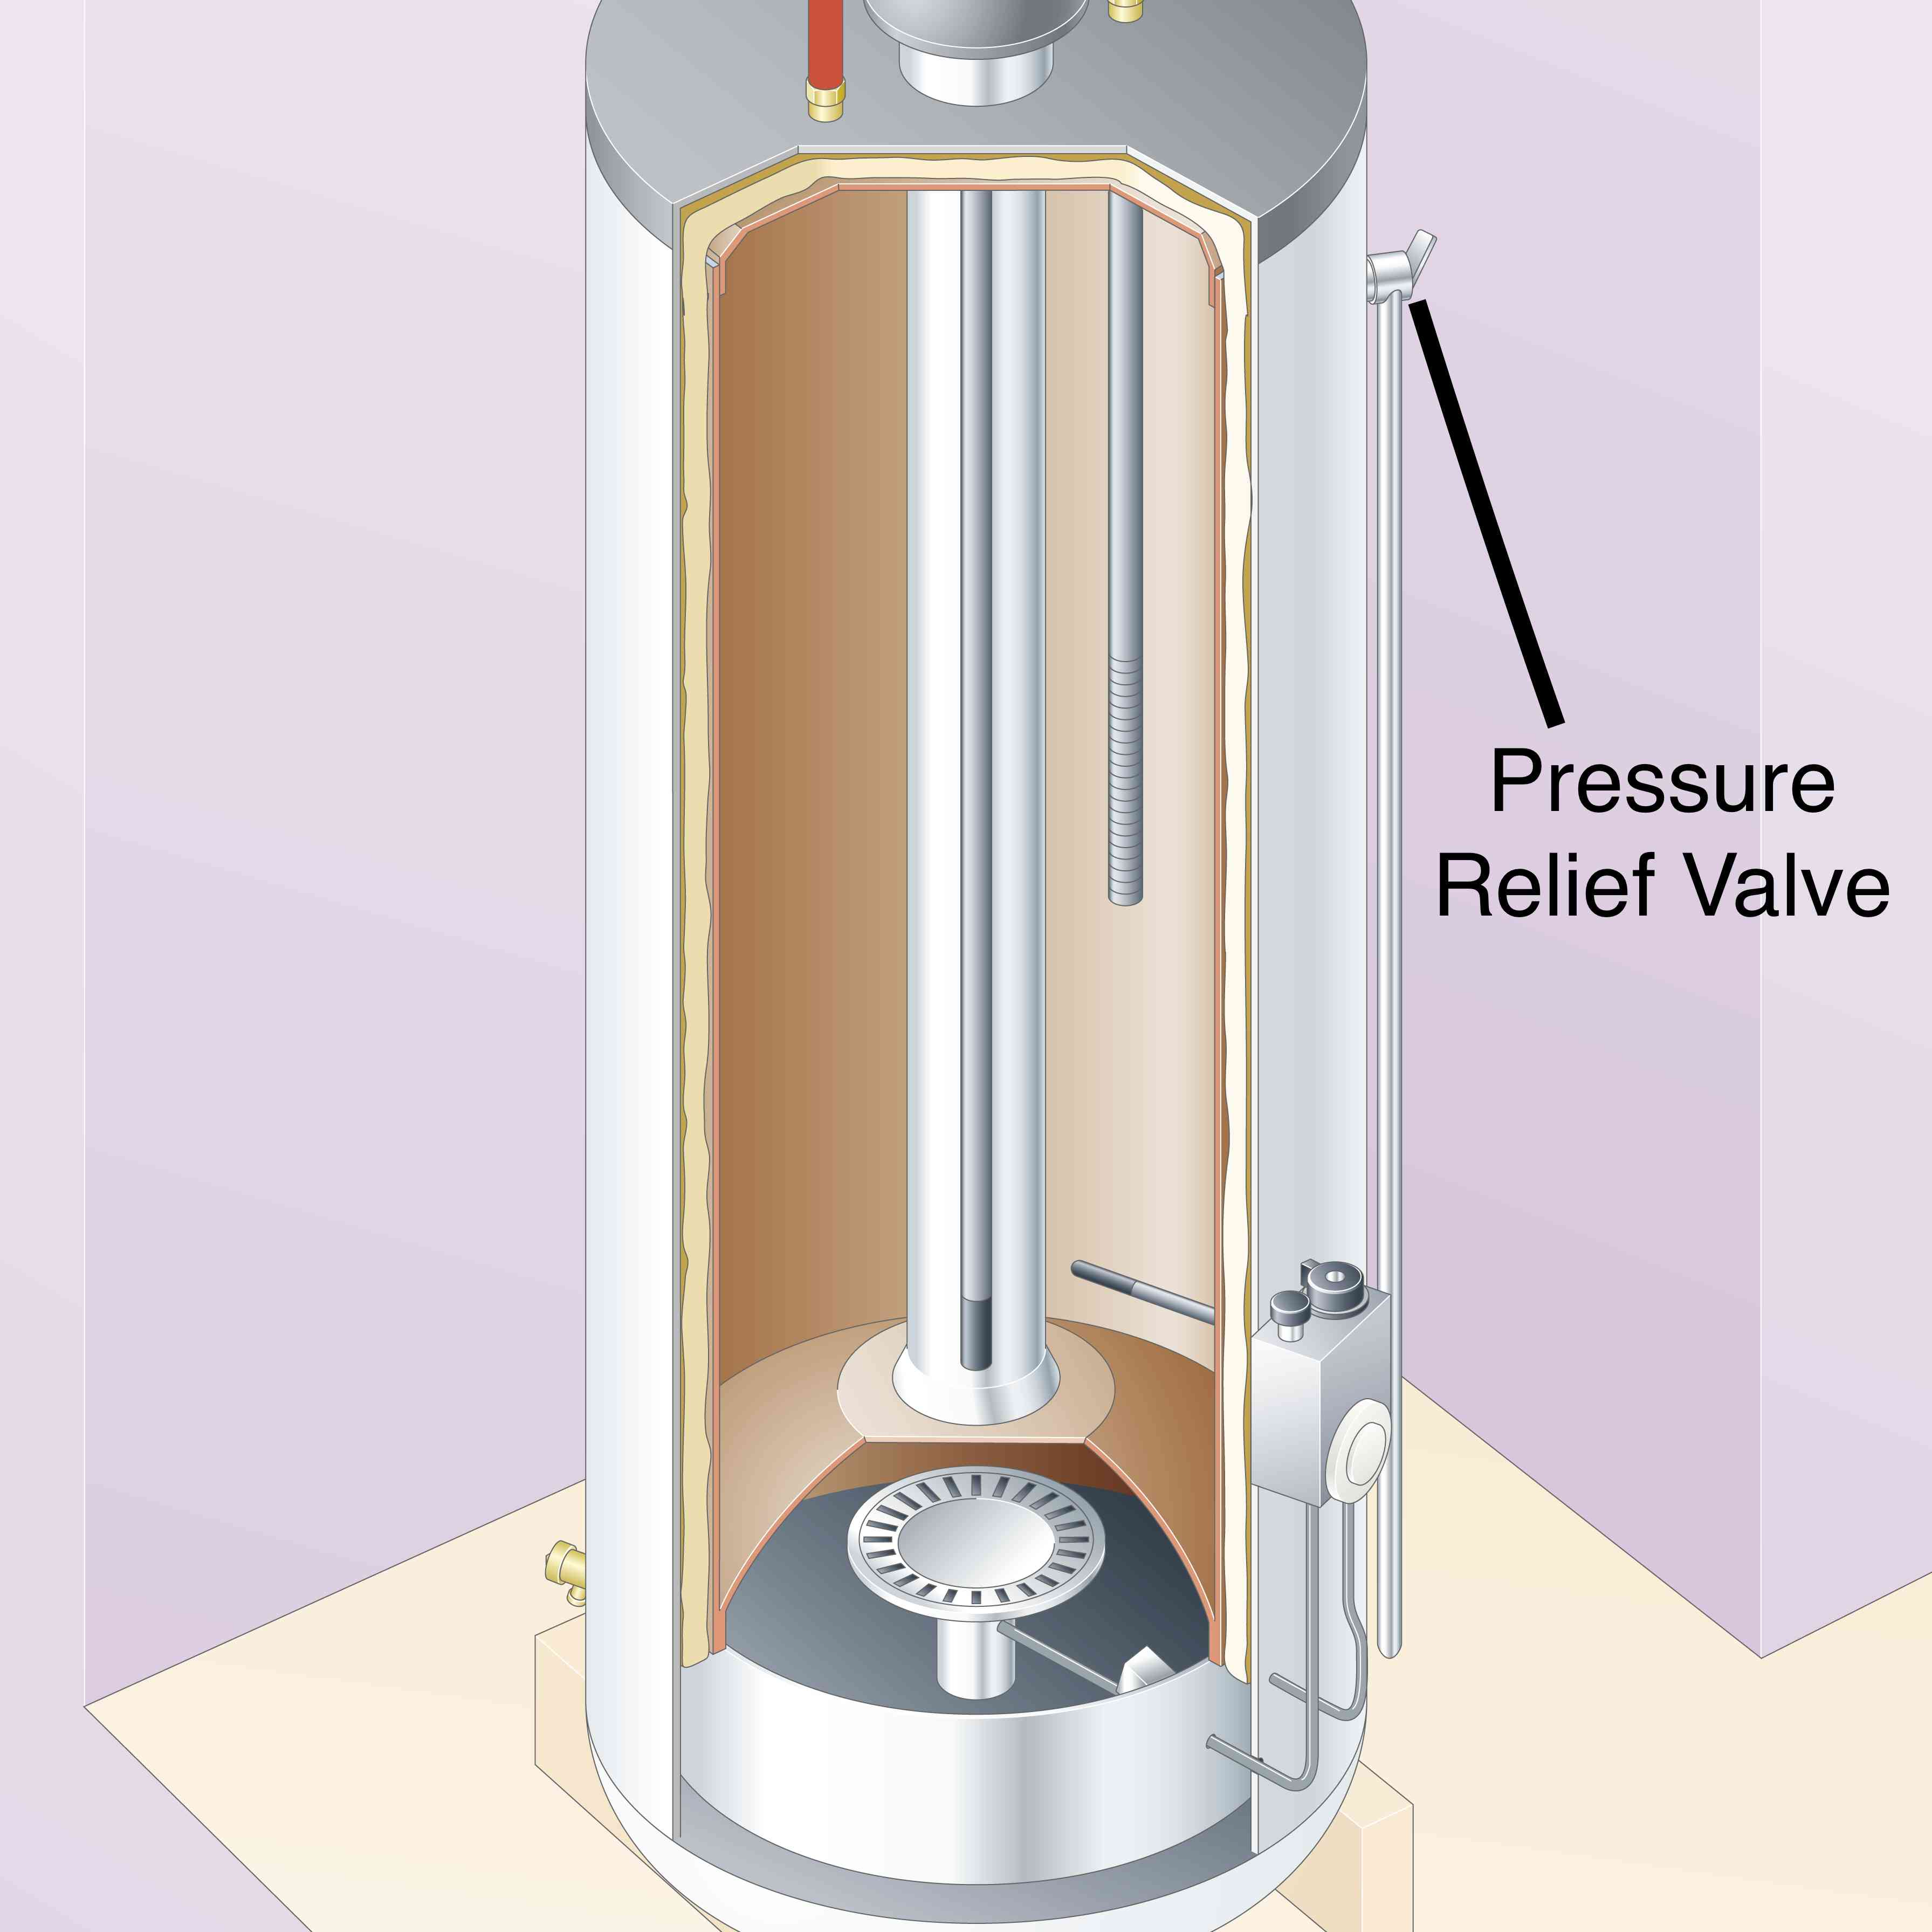 Inside of a gas hot water heater, pressure relief valve